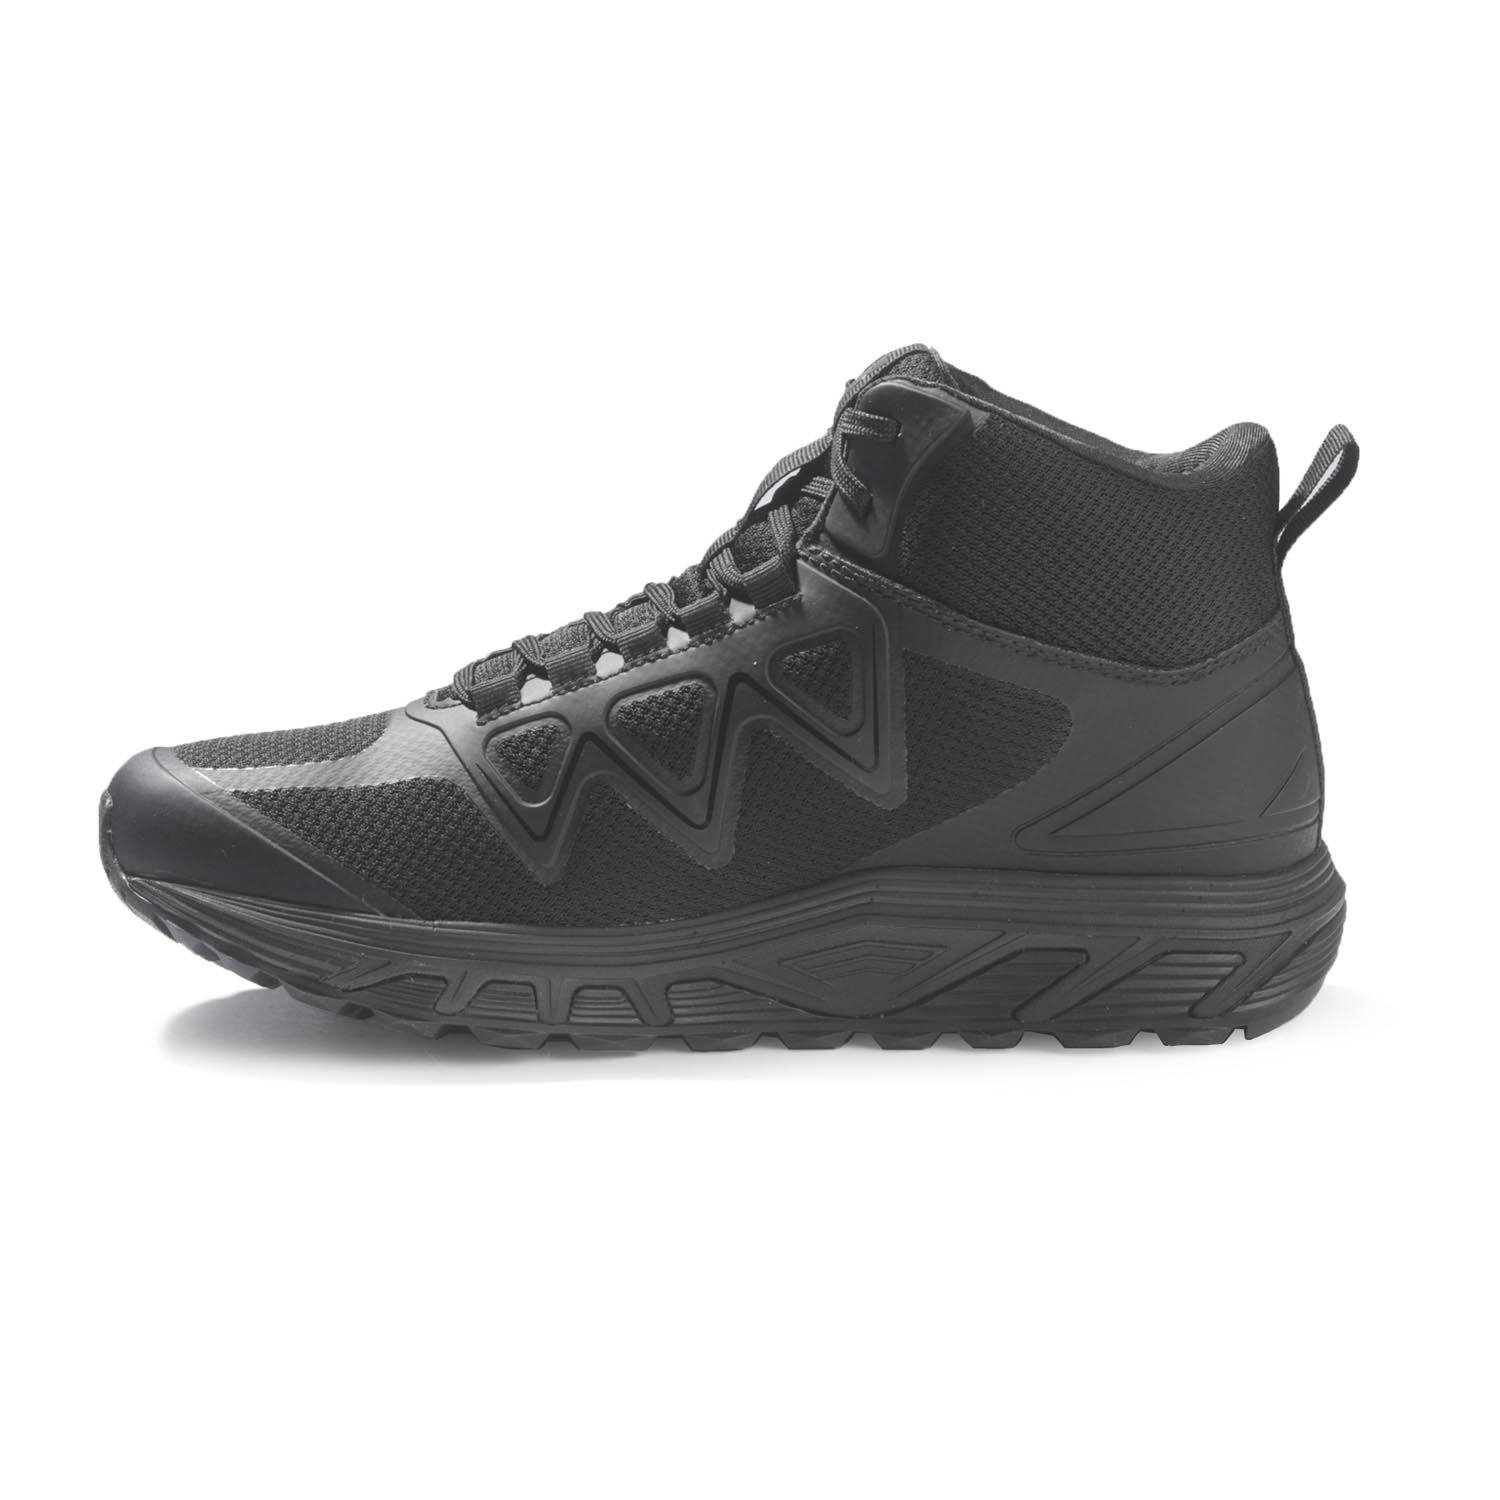 Bates Men's Rush Mid Tactical Boot